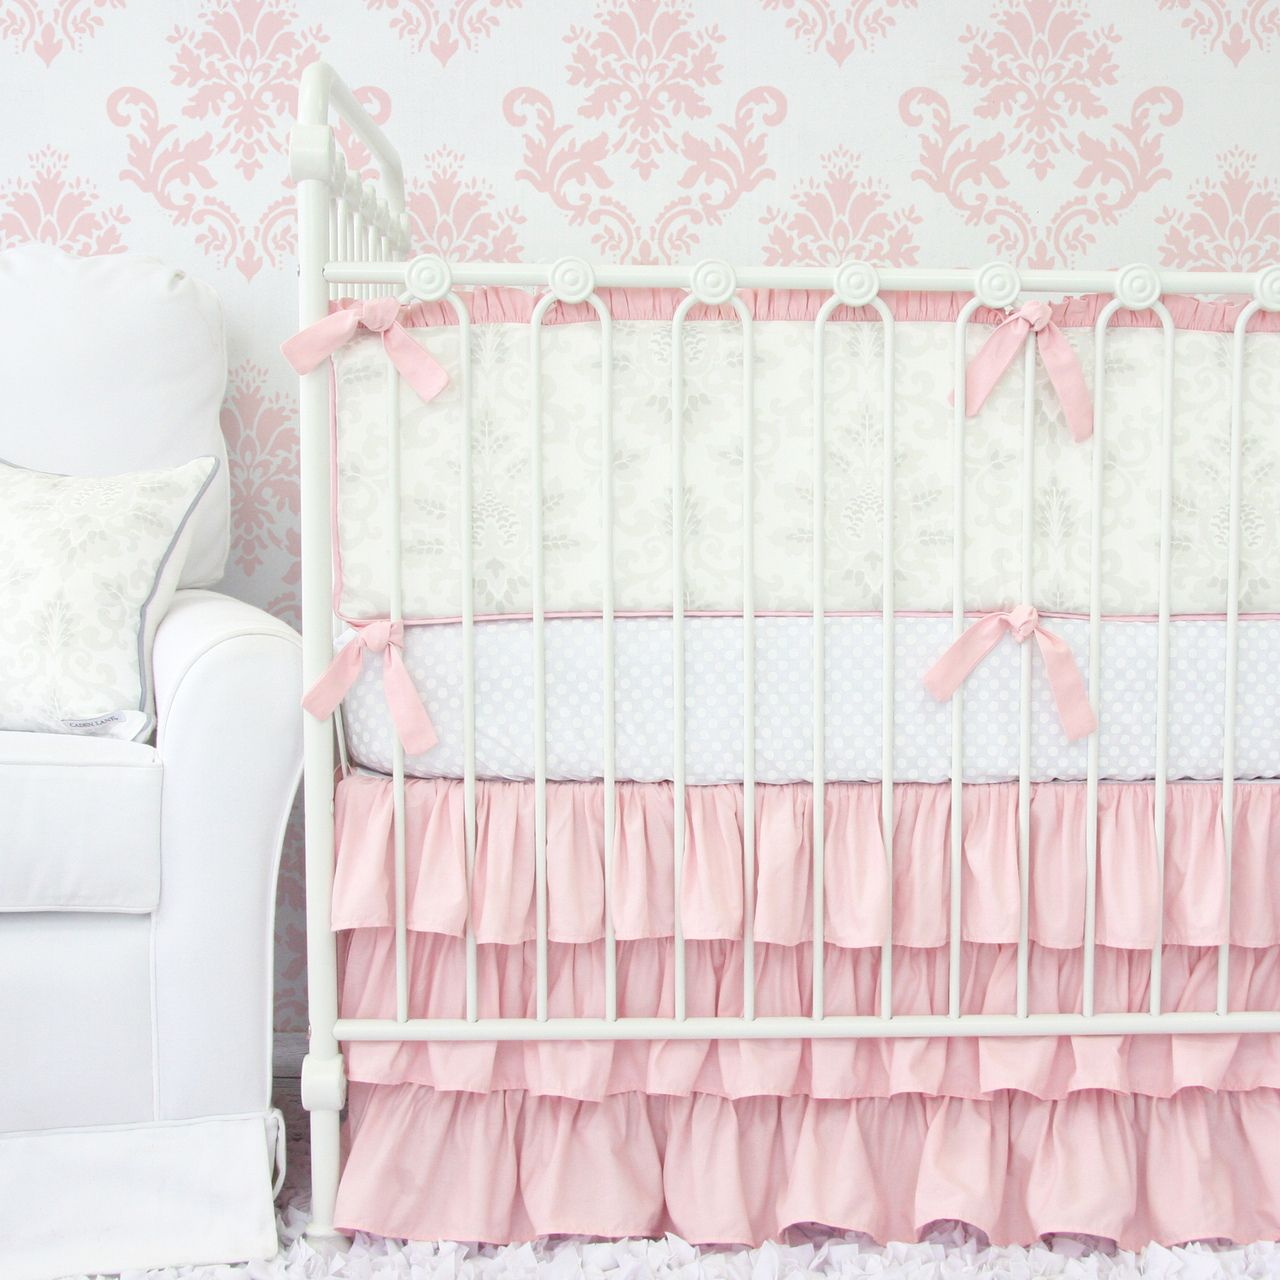 Soft And Elegant Gray And Pink Nursery: Pink With Hint Of White And Gray! Perfect For The Soft